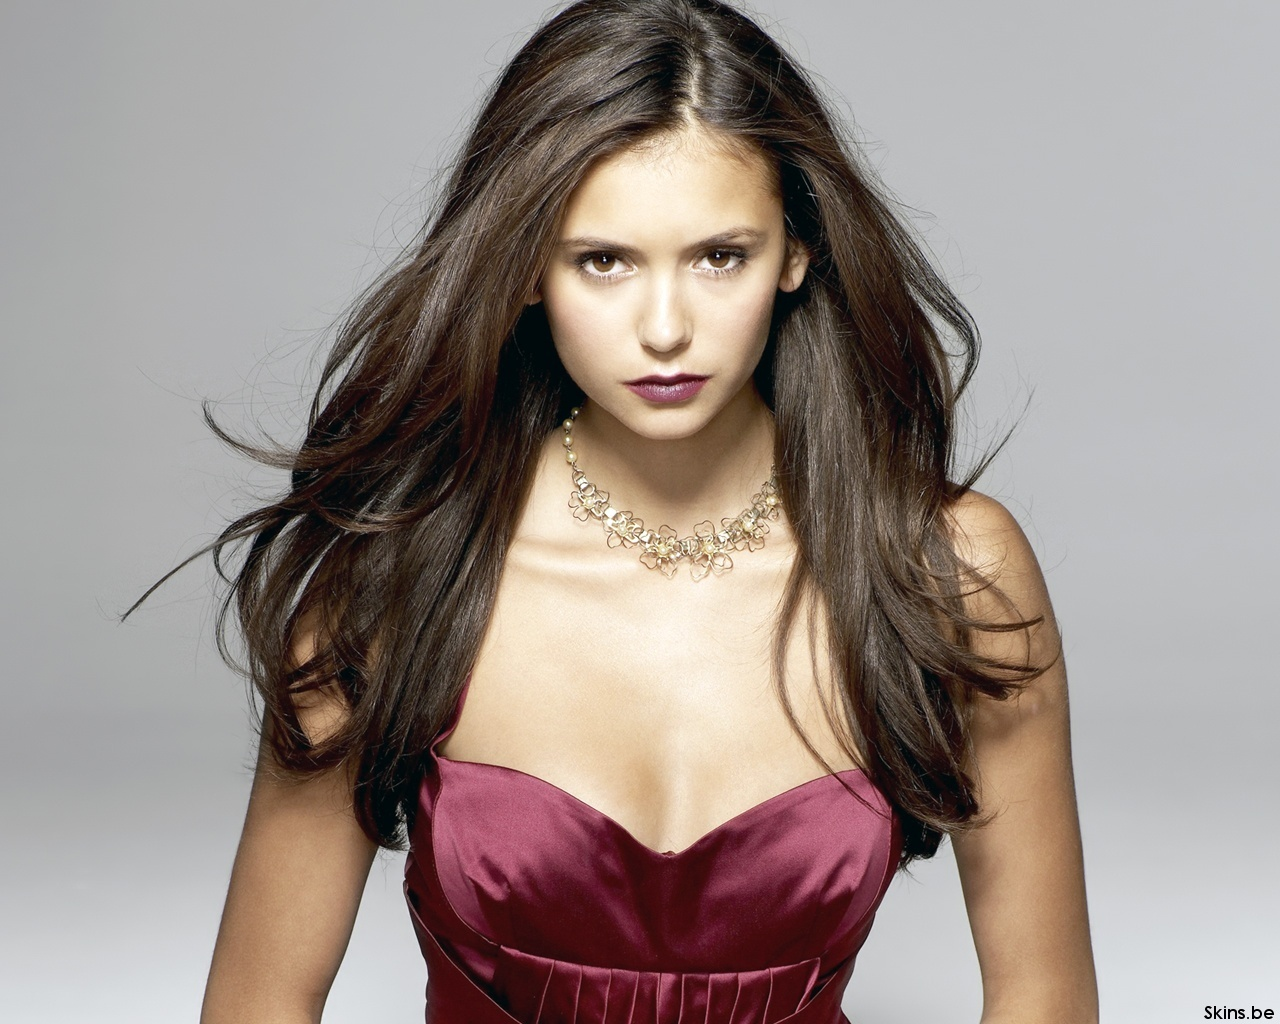 Nina Dobrev - The Vampire Diaries Wallpaper (8556728) - Fanpop